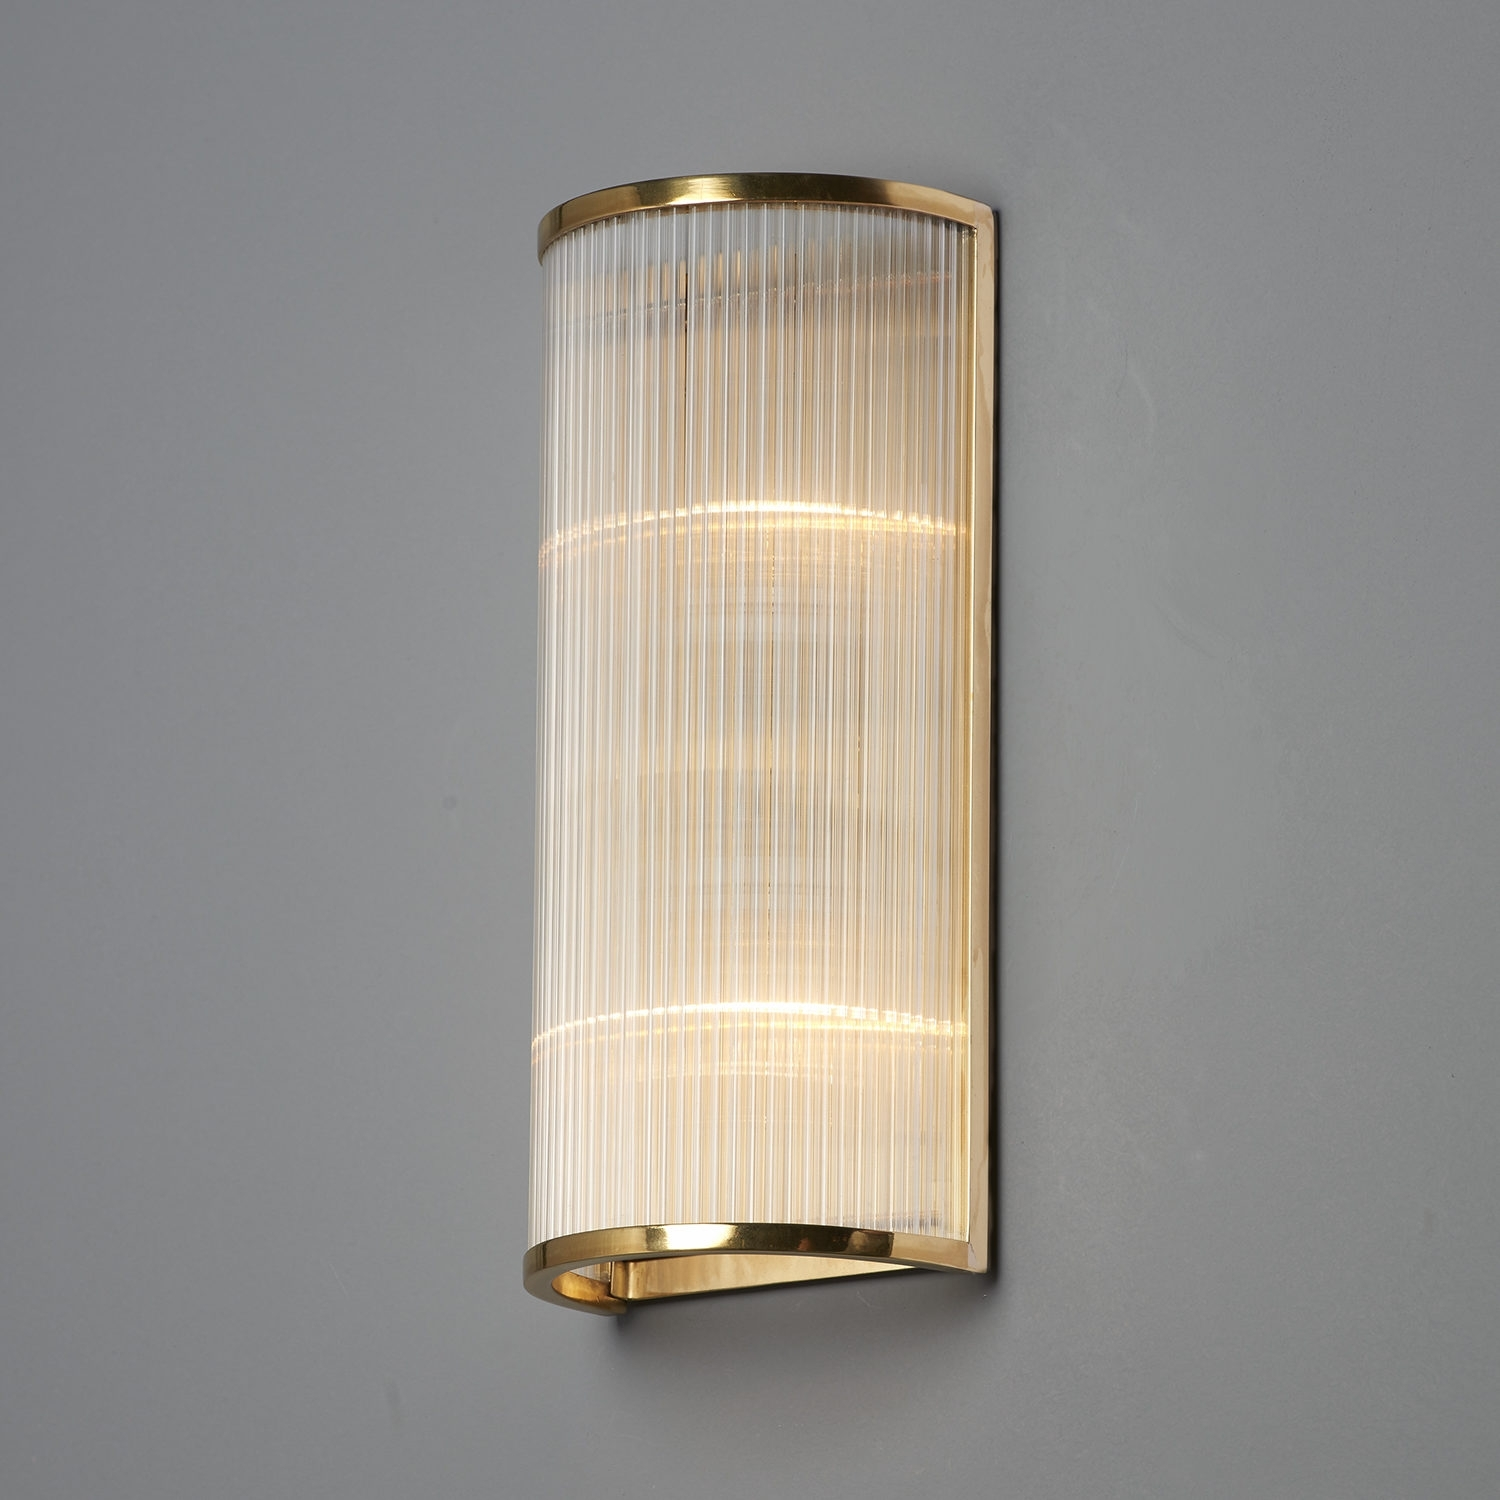 Art Deco Wall Light | Astele For Art Deco Wall Art (View 20 of 20)